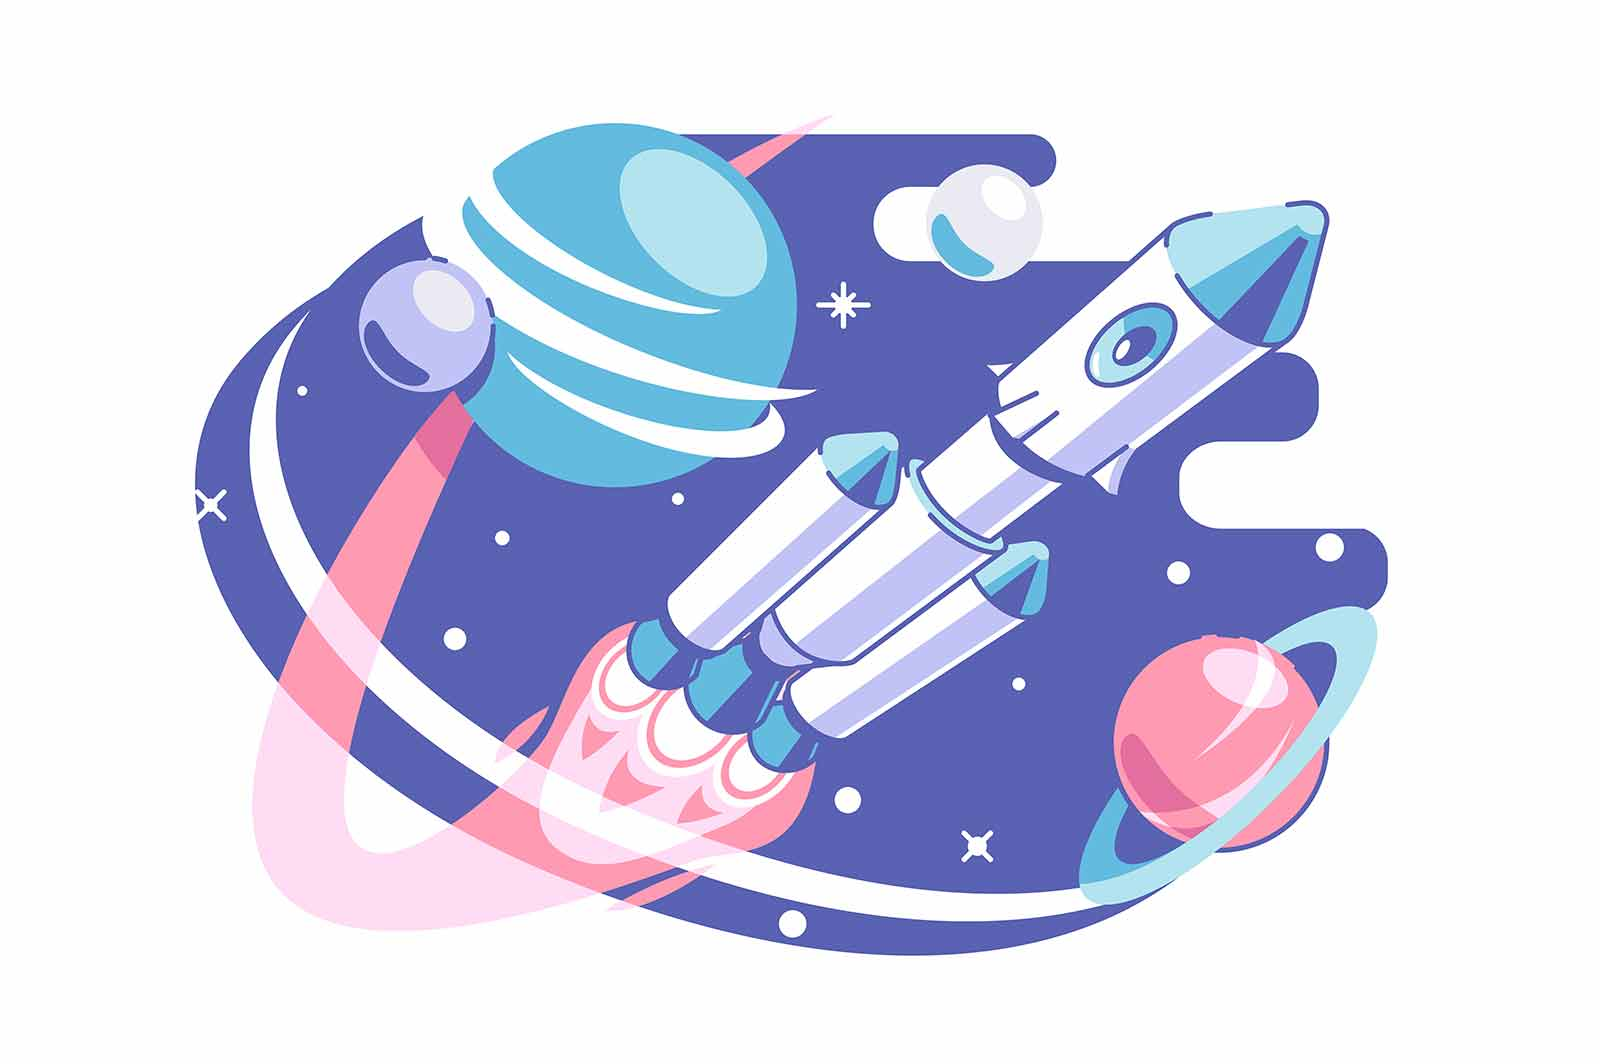 Space and galaxy exploring vector illustration. Astronaut in spaceship explore cosmos flat style. Stars and planets. Astronomy and science concept. Isolated on white background